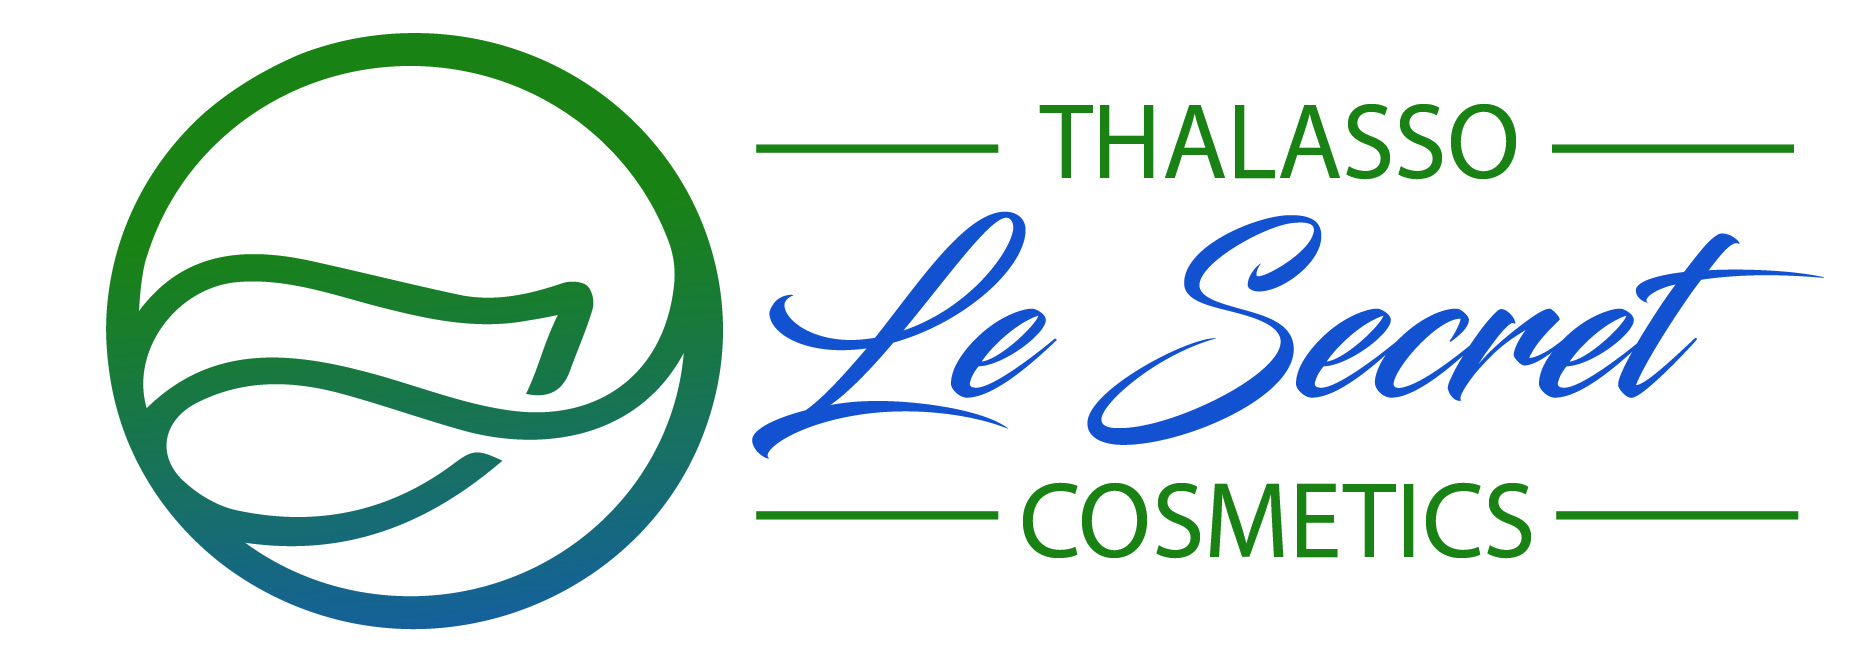 Le Secret Thalasso Cosmetics